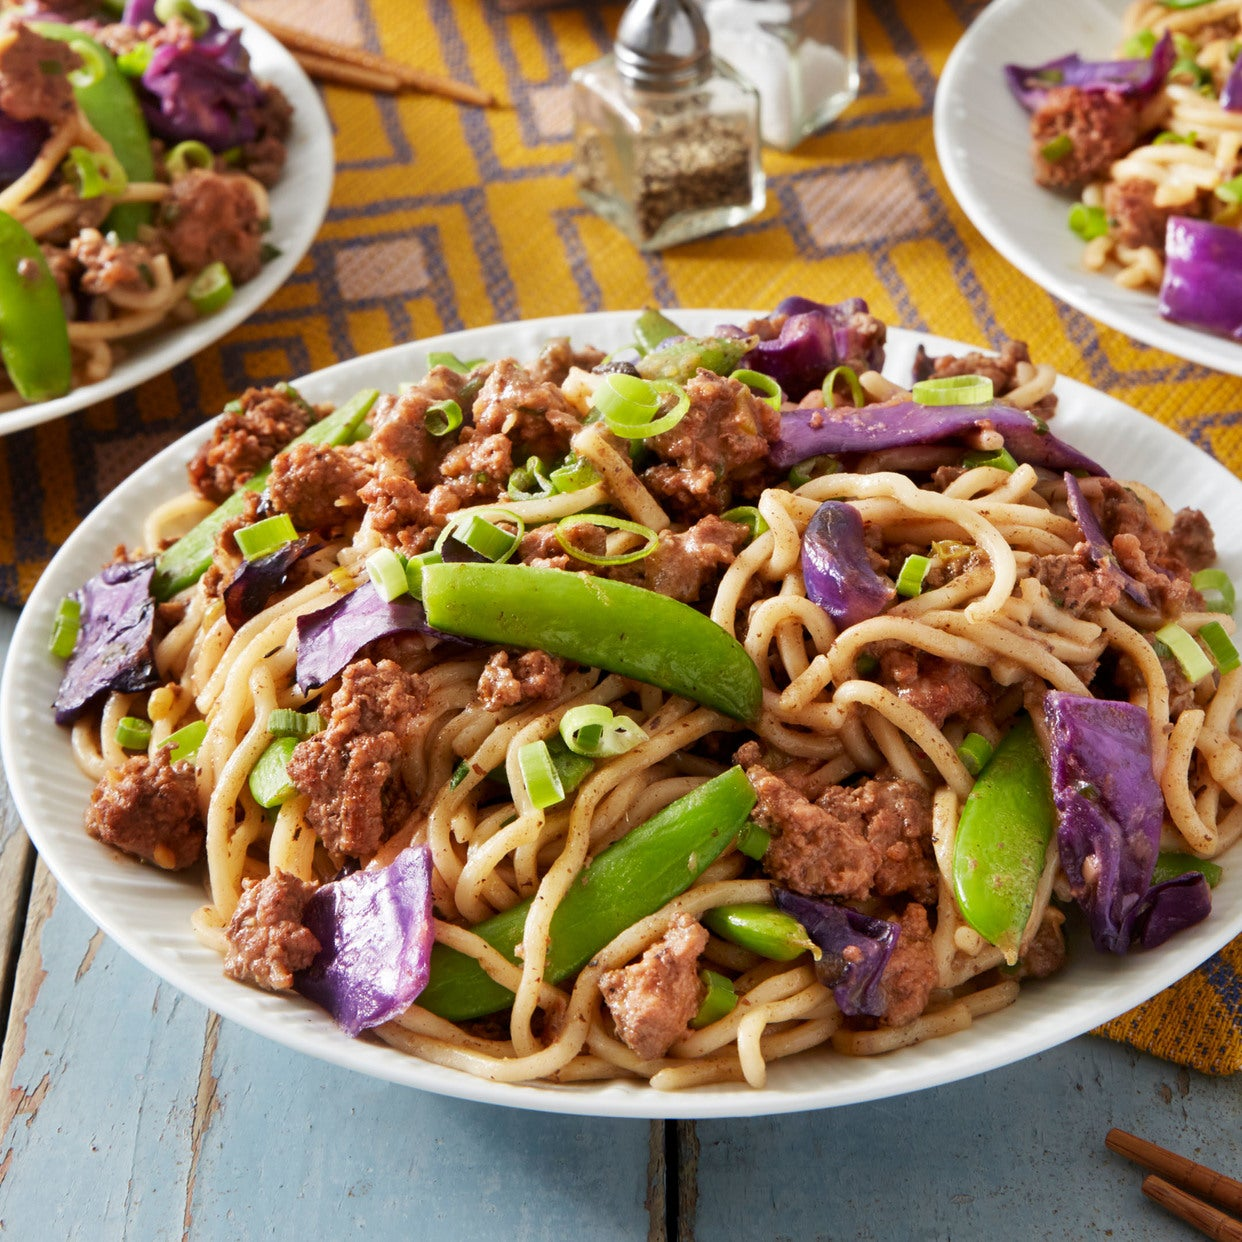 Beef Lo Mein with Black Garlic & Sugar Snap Peas